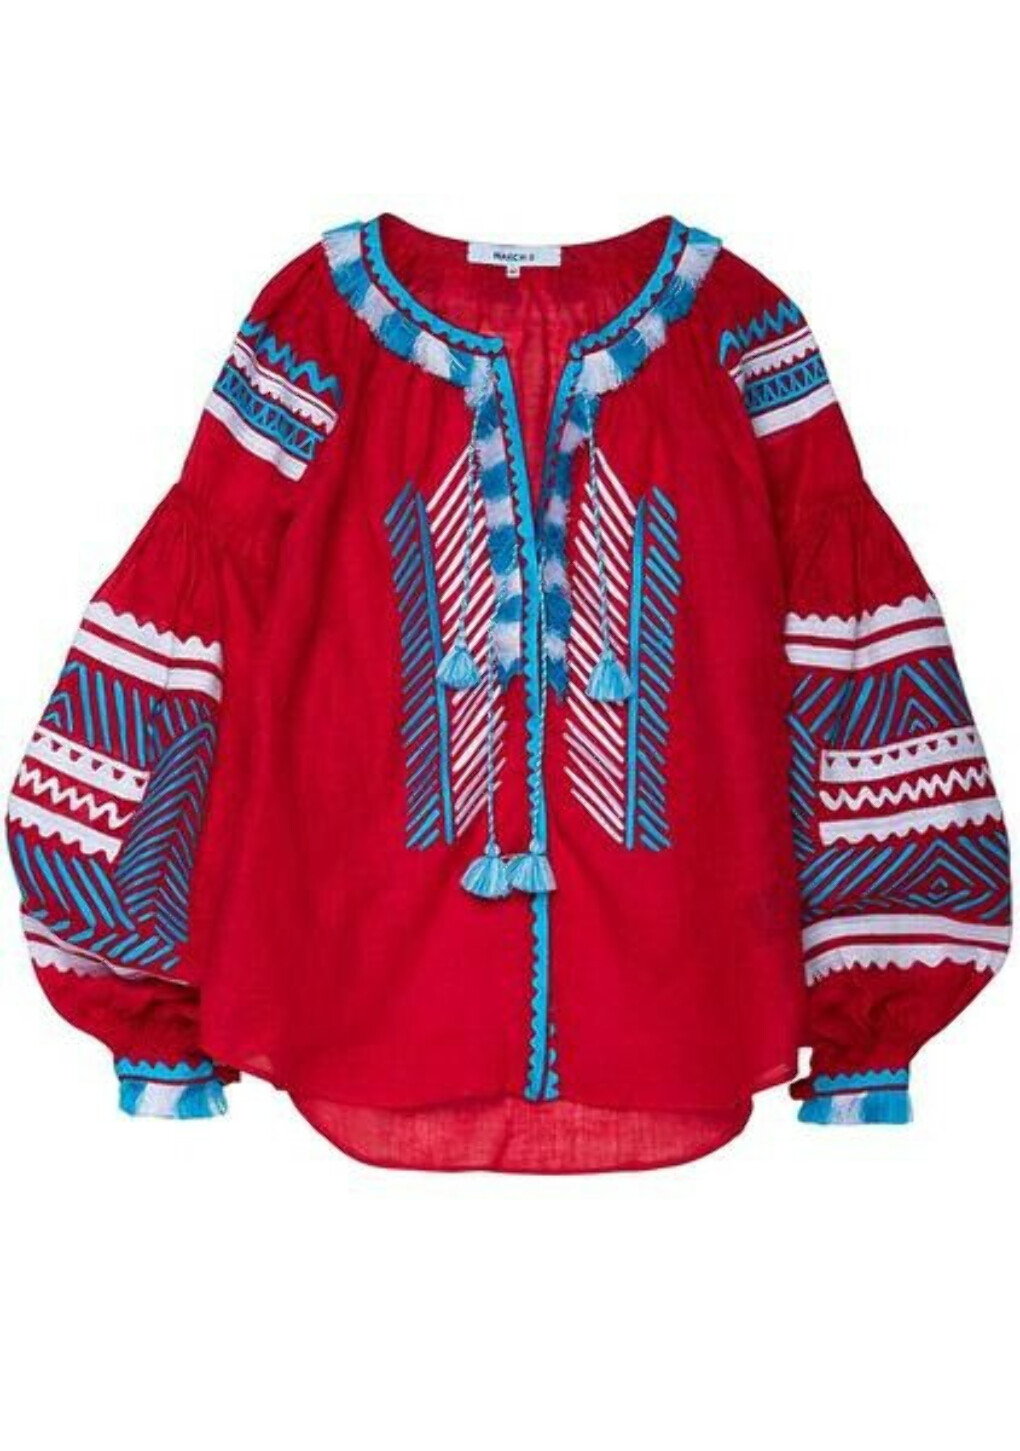 Namibia blouse in red